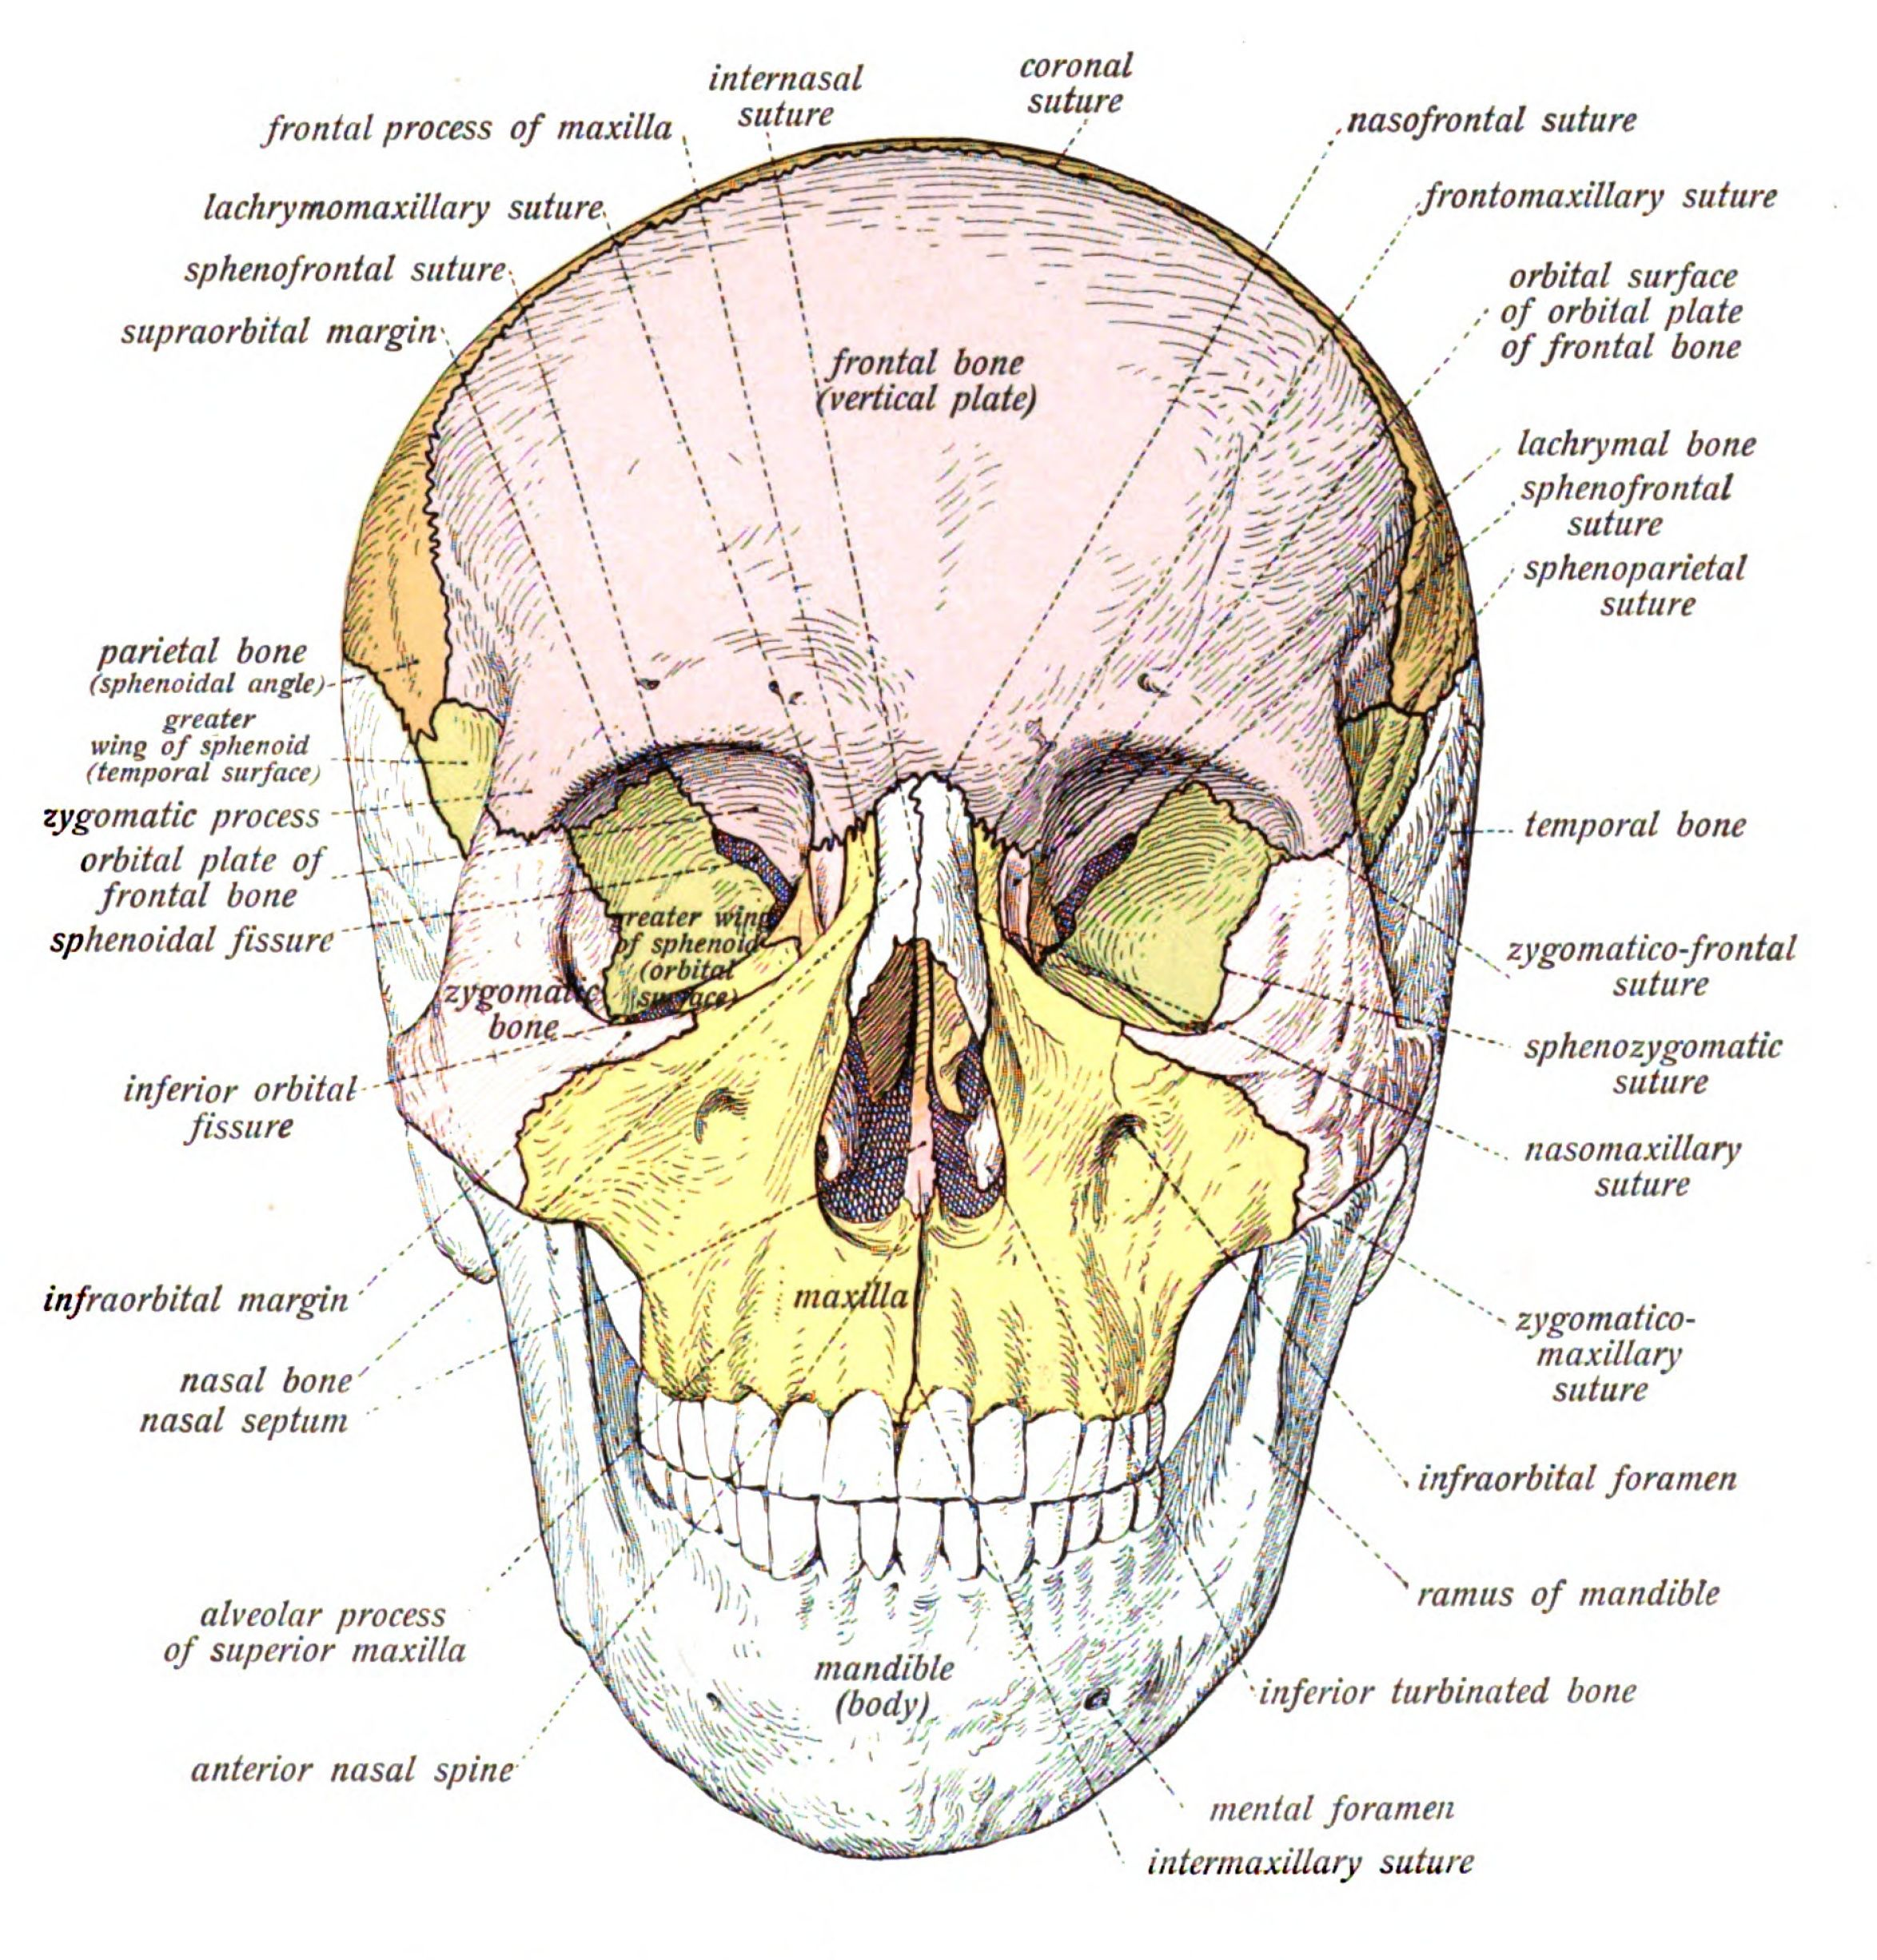 Facial structure | Forensic studies | Pinterest | Poster ...